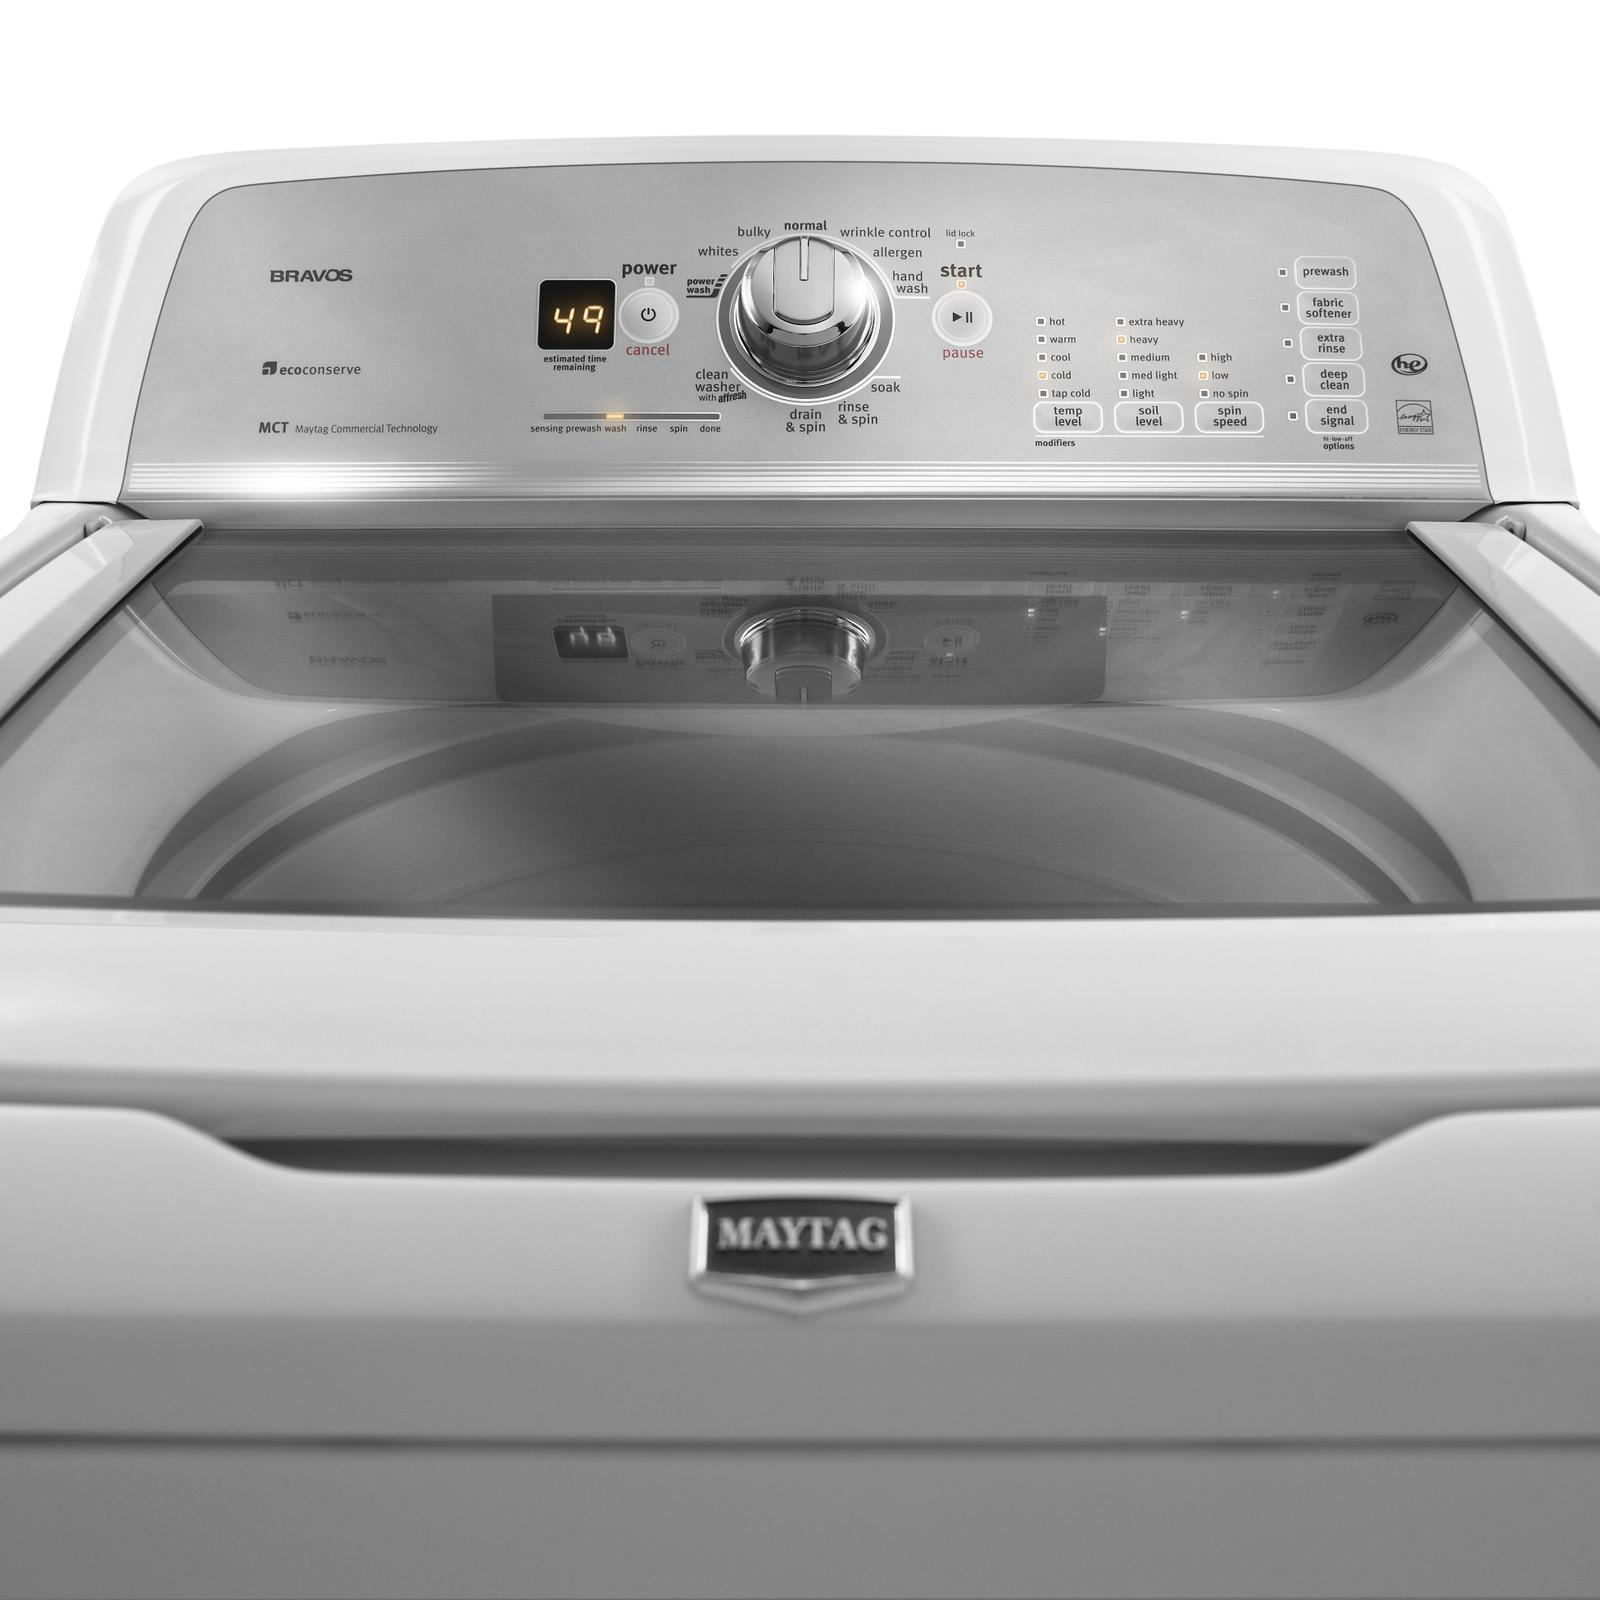 Mvwx700xl Maytag Mvwx700xl Bravos X Series Top Load